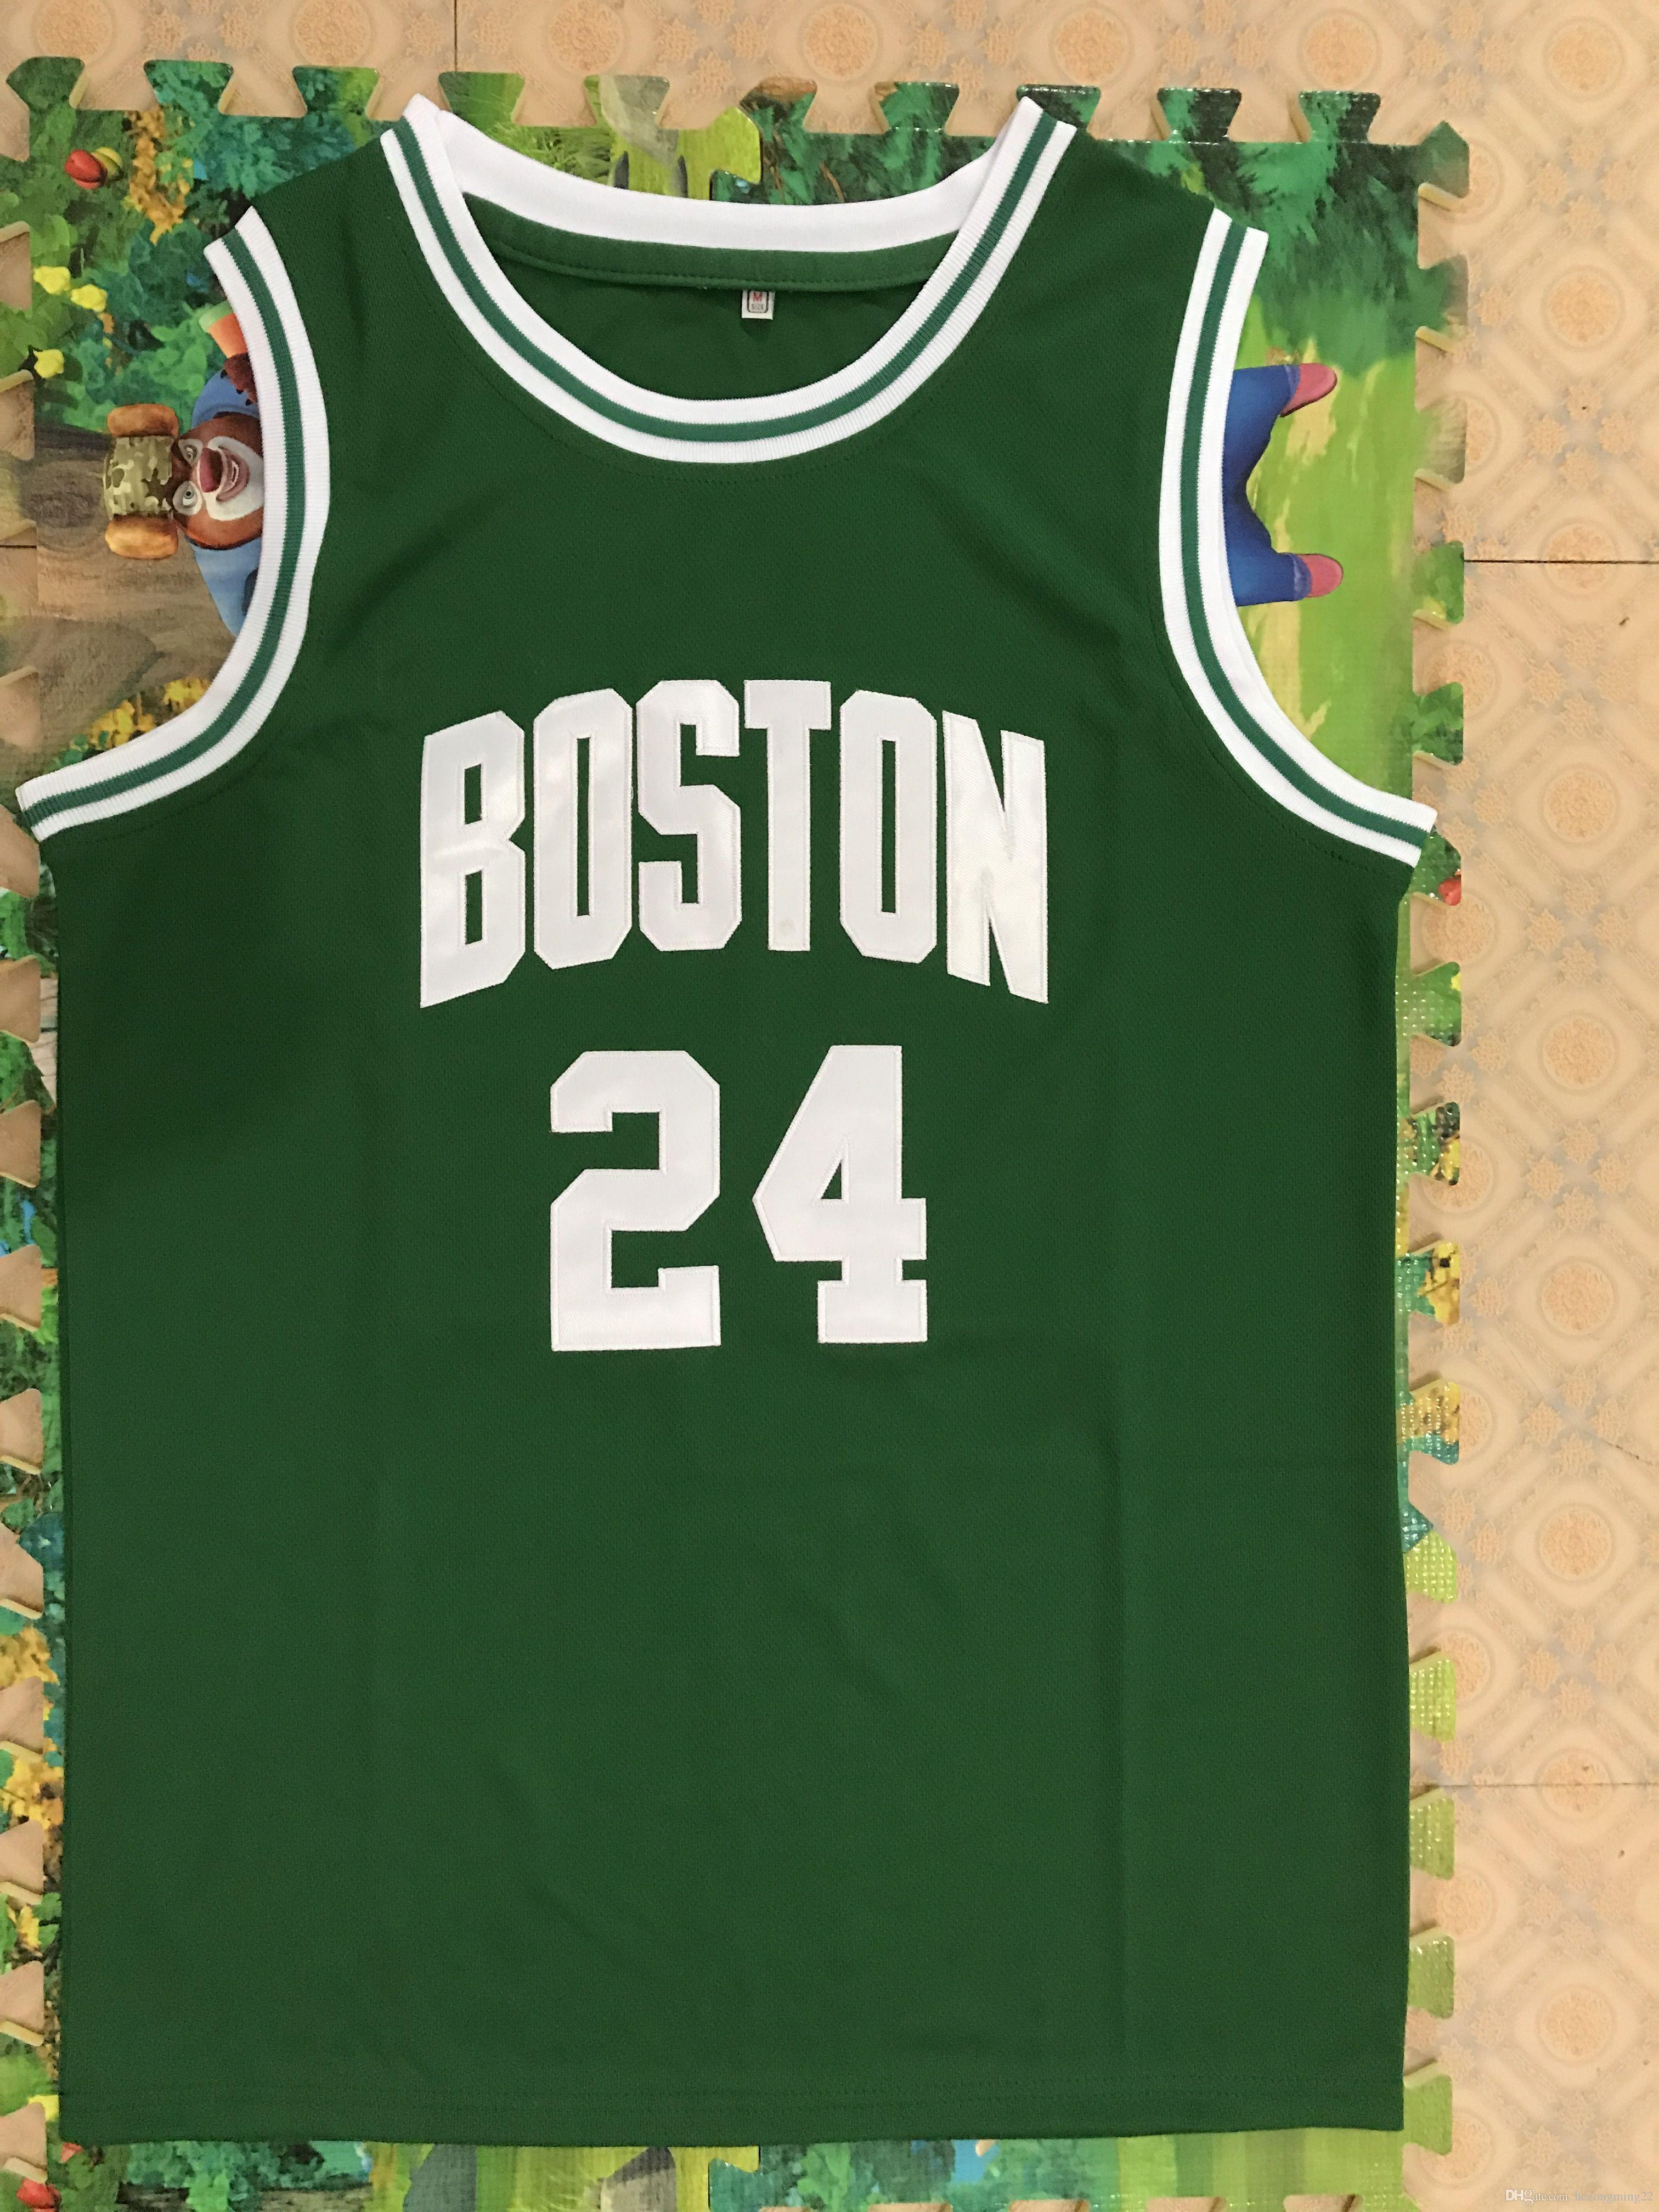 size 40 abff5 6573b 2019 24 Sam Jones Boston Basketball Jersey Mens Embroidery Stitched Custom  Any Number And Name From Hezongming22, $26.13 | DHgate.Com